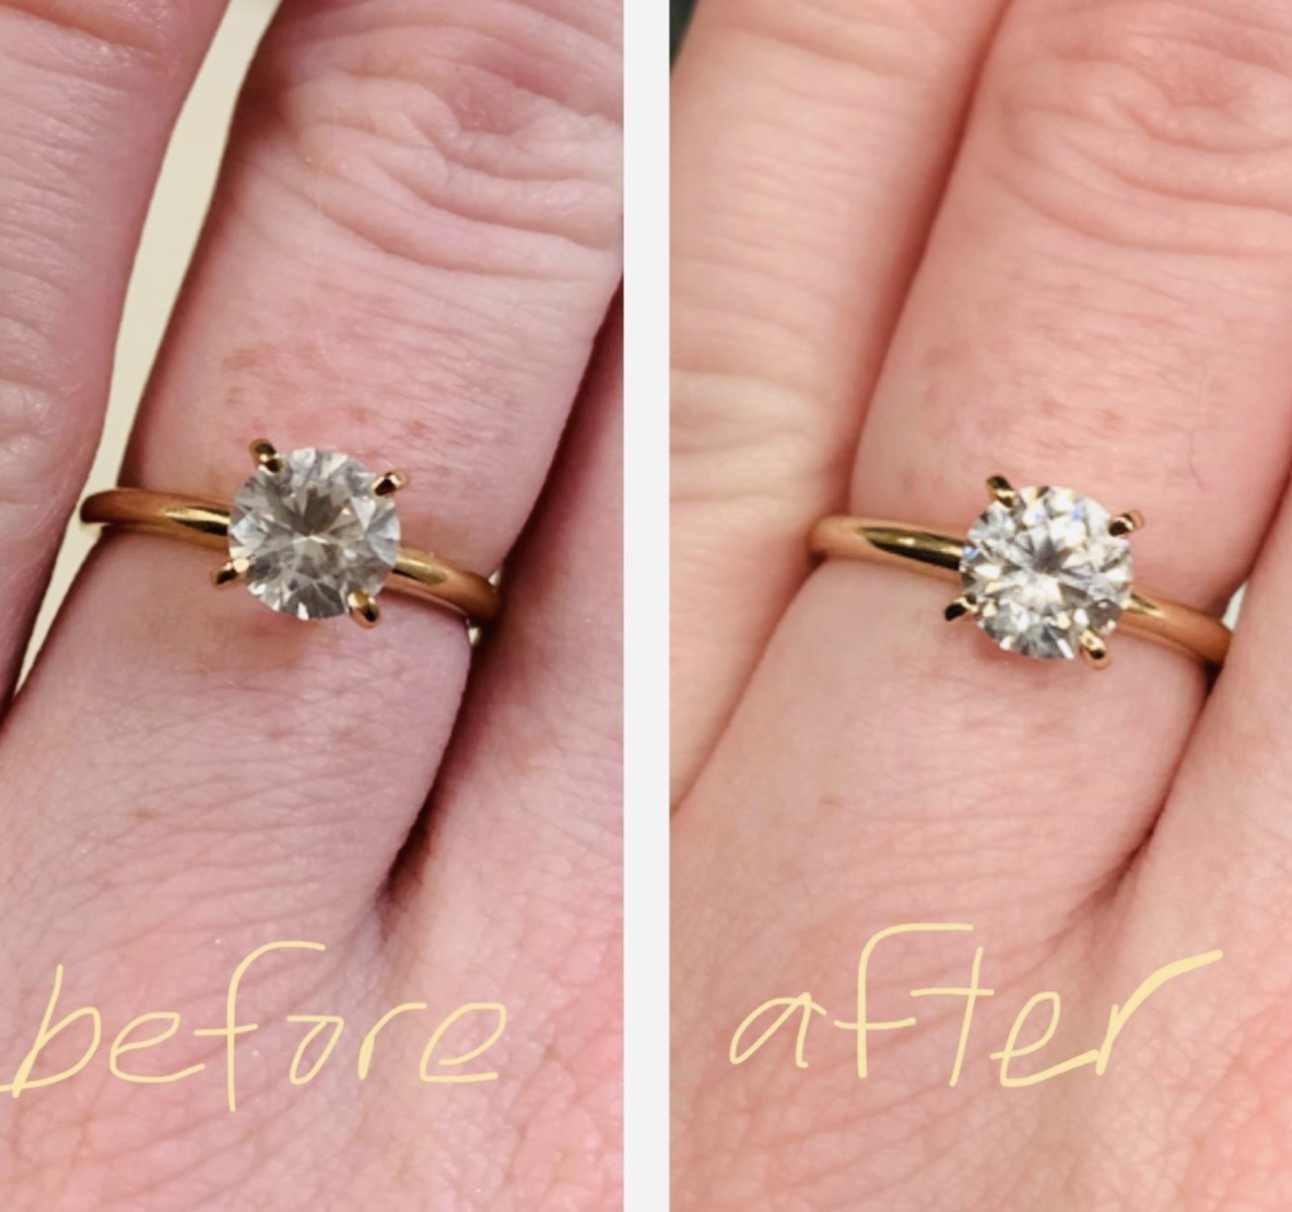 on the left, the diamond on a reviewer's ring looking fogged up, and on the right, the same diamond now looking shiny and new